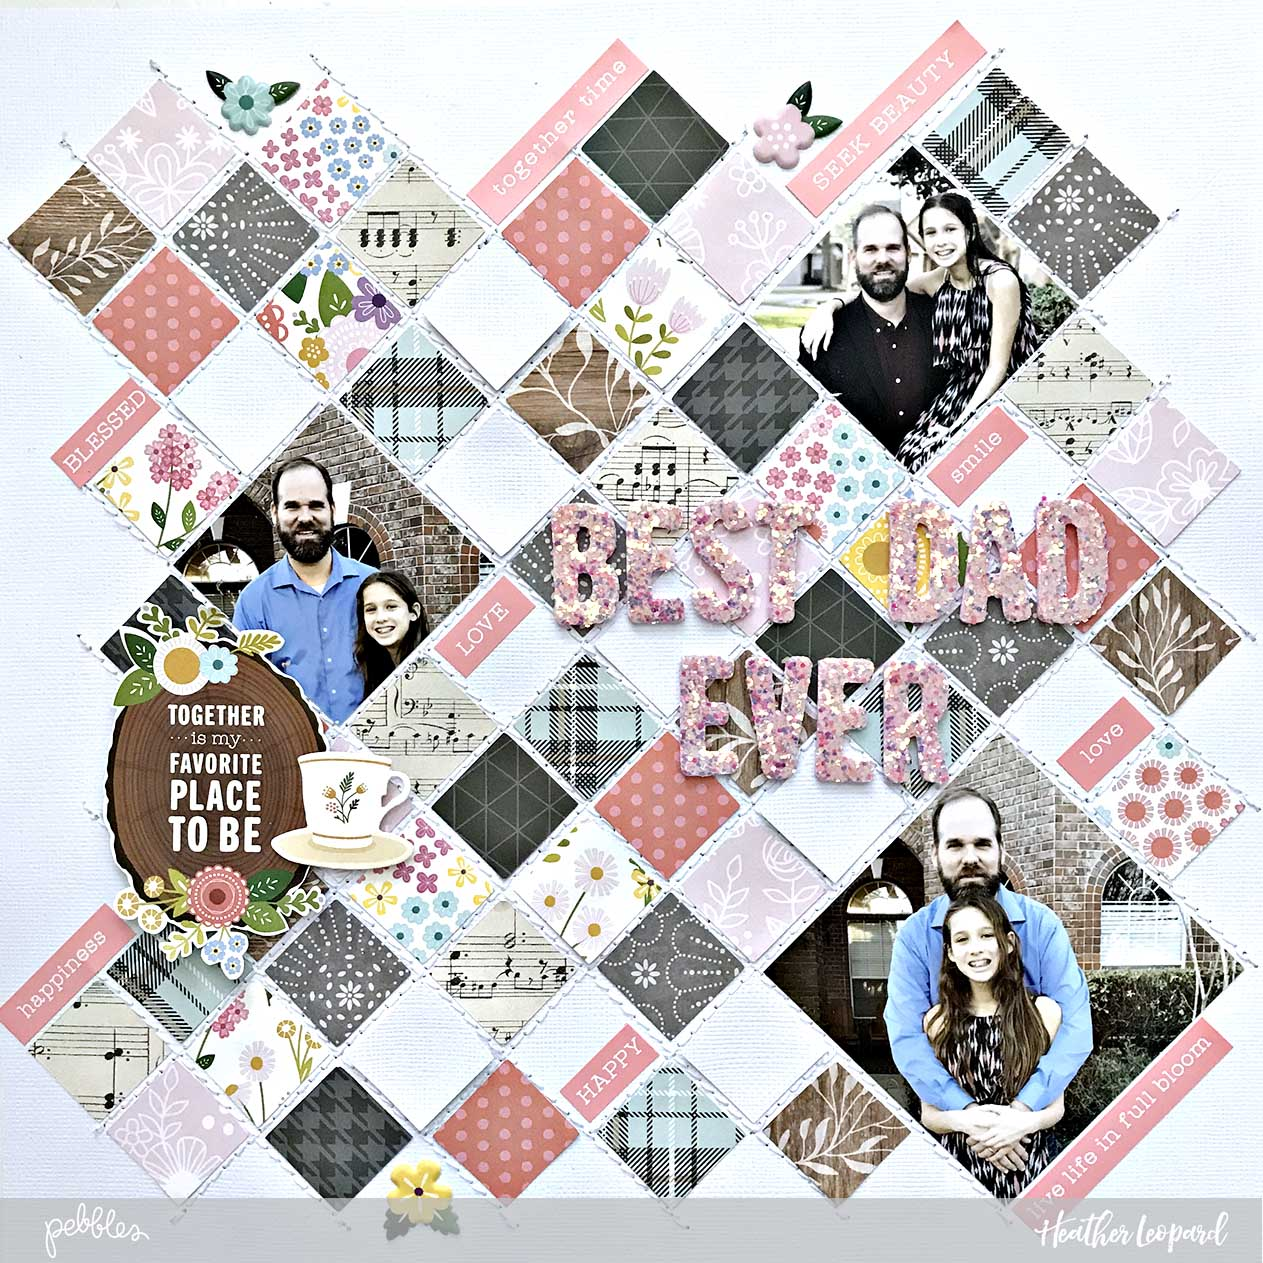 Father's Day Scrapbook Layout and Free Cut File by @heatherleopard for @pebblesinc #madewithpebbles #fathersday #heatherleopard #silhouettecameo #cutfile